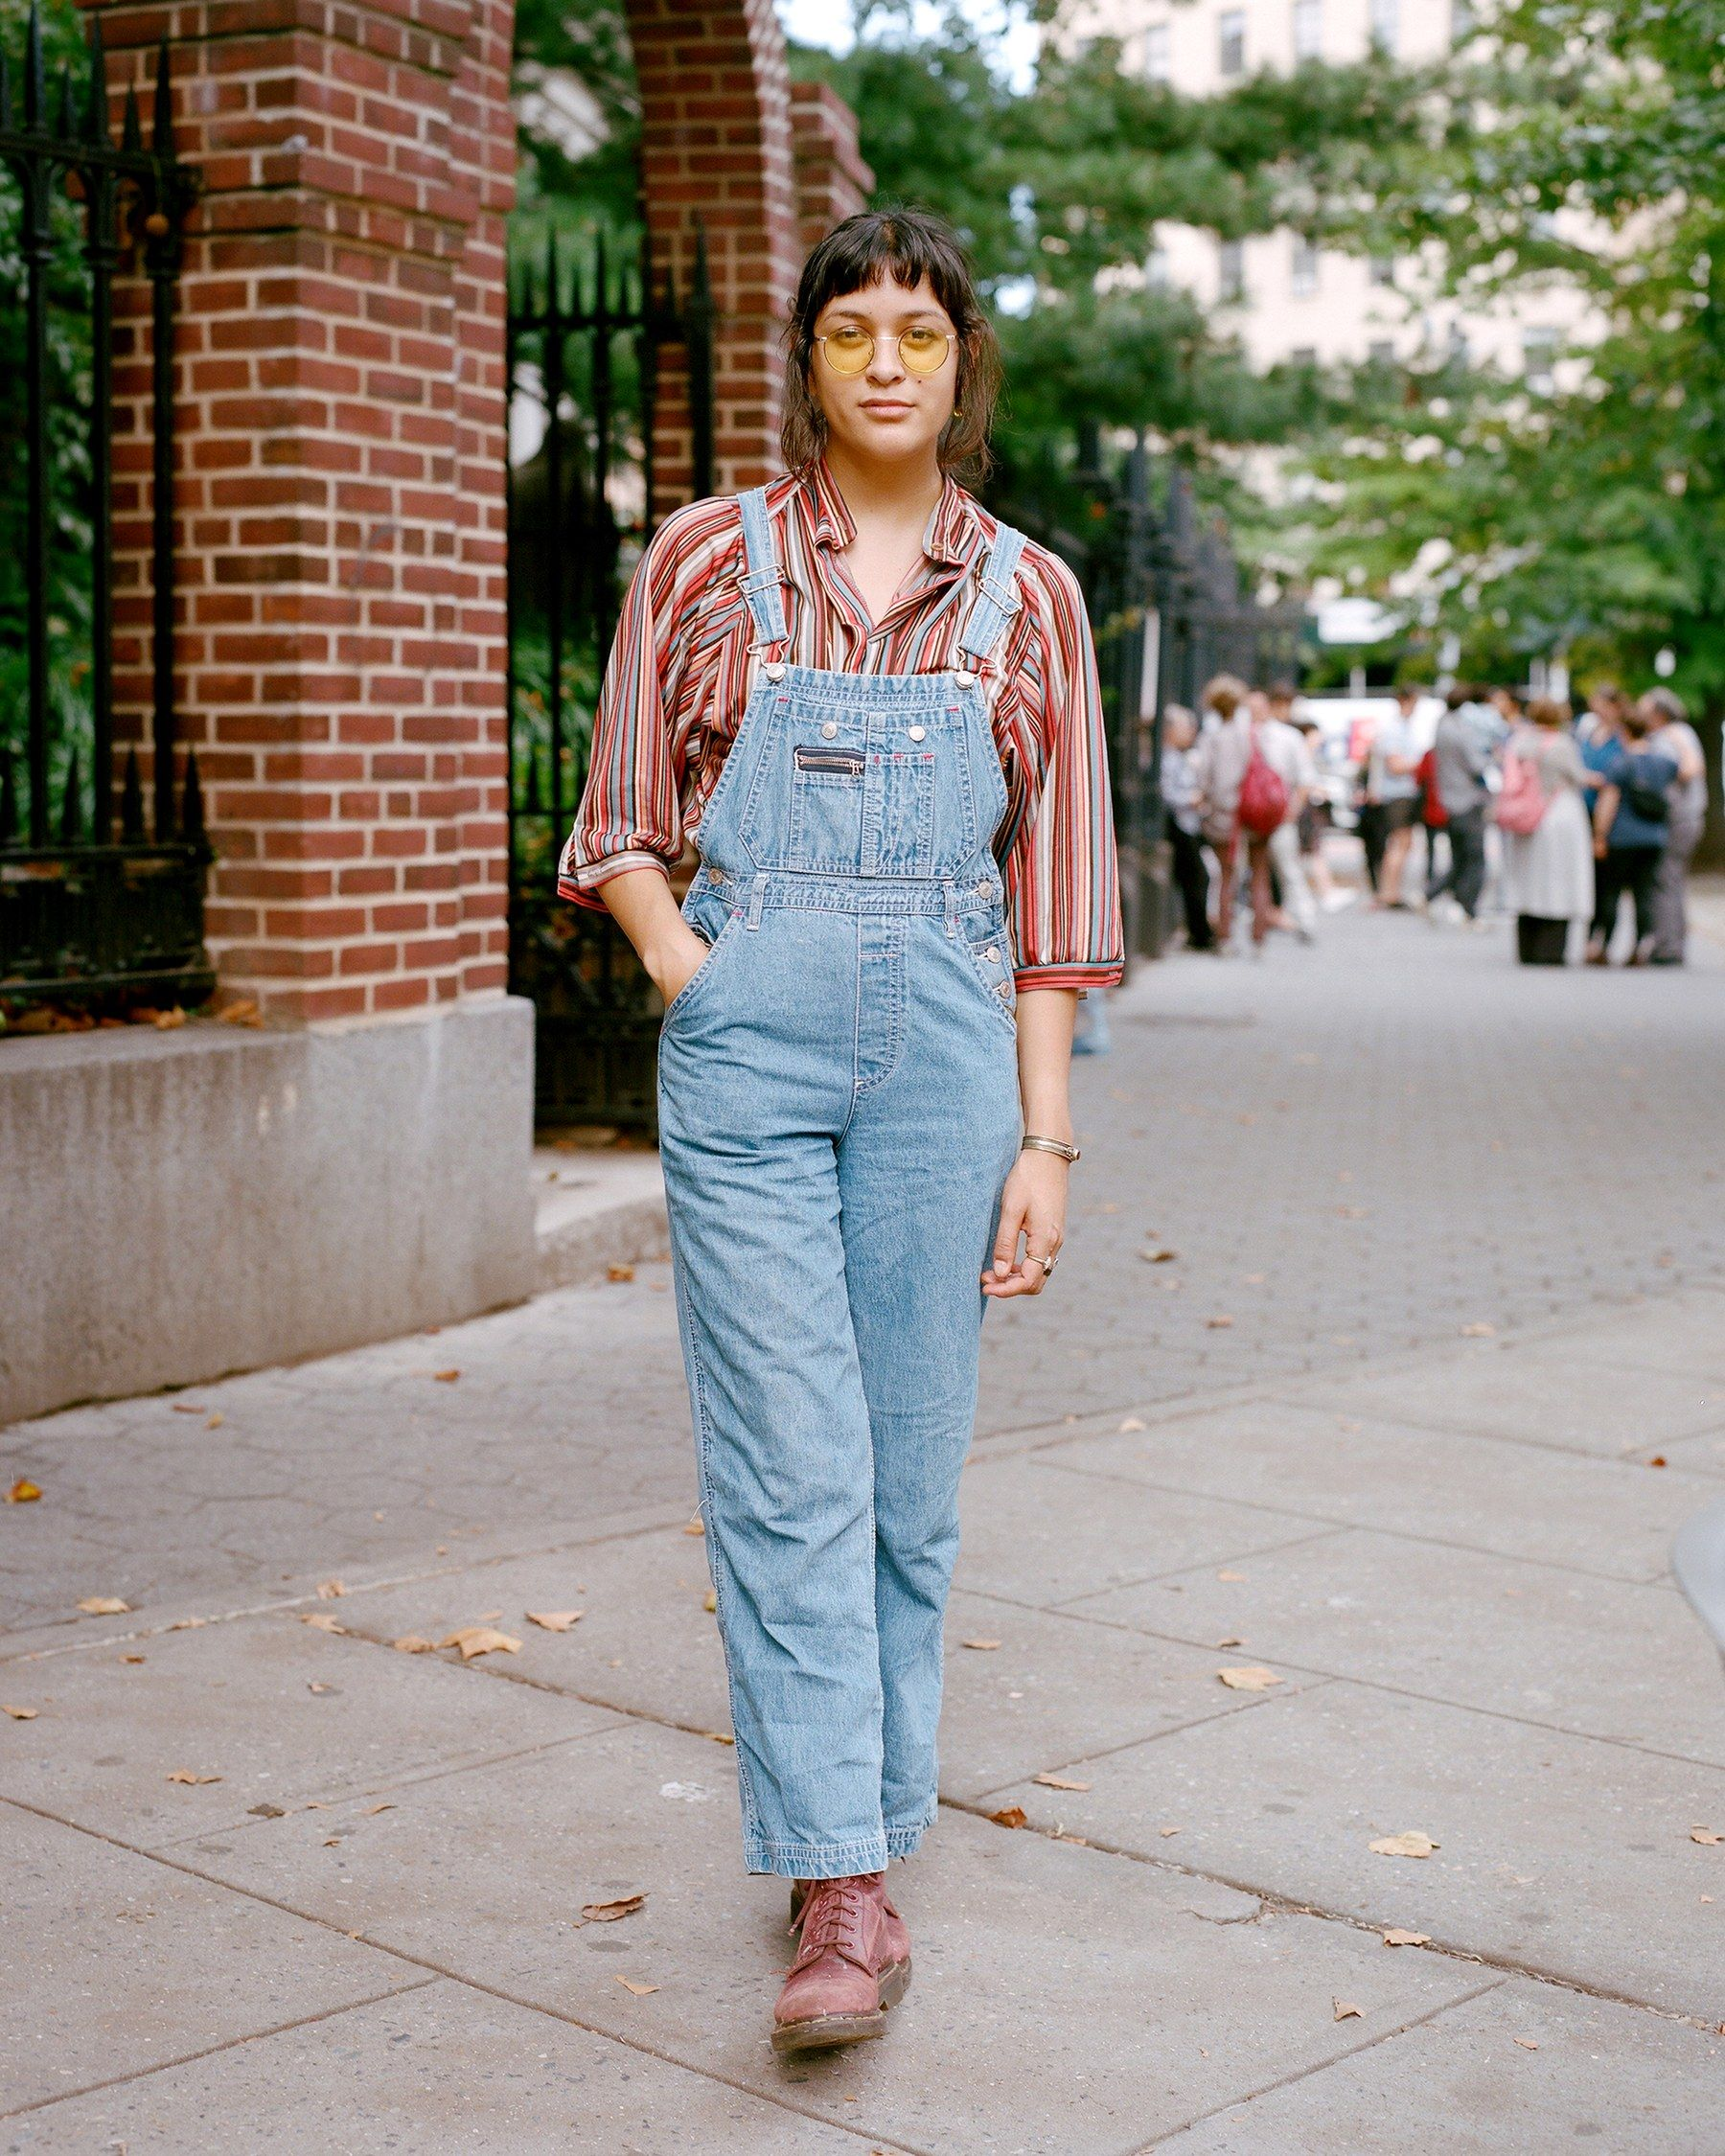 A Lesson In Cool Kid Street Style, From New York City's